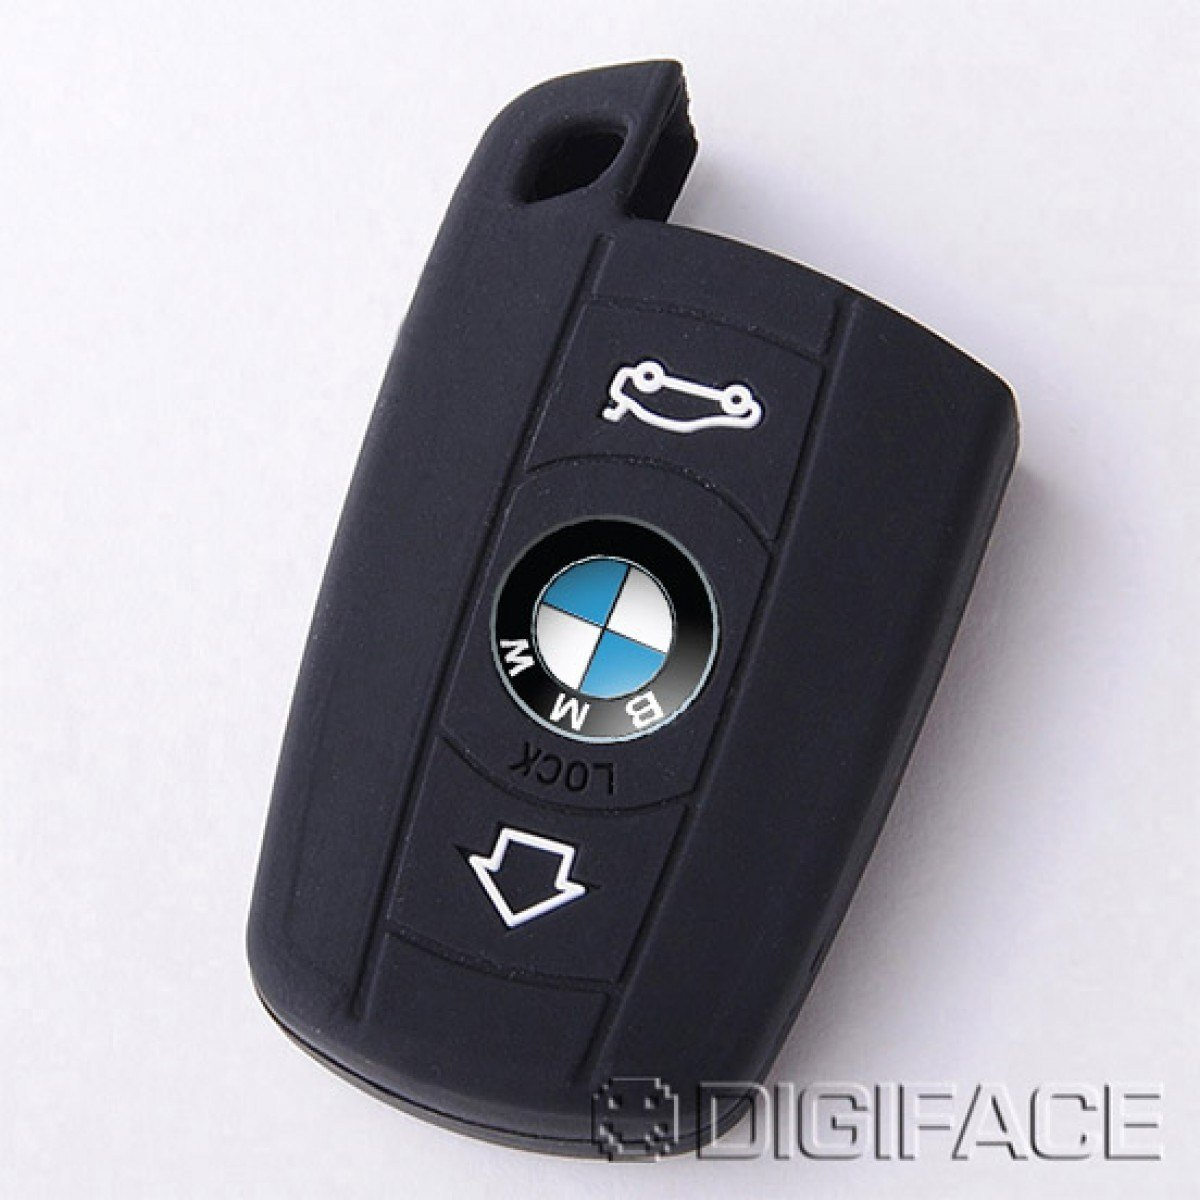 Latest Car Bmw Key Silicone Cover Black In Dubai Abu Dhabi Free Download